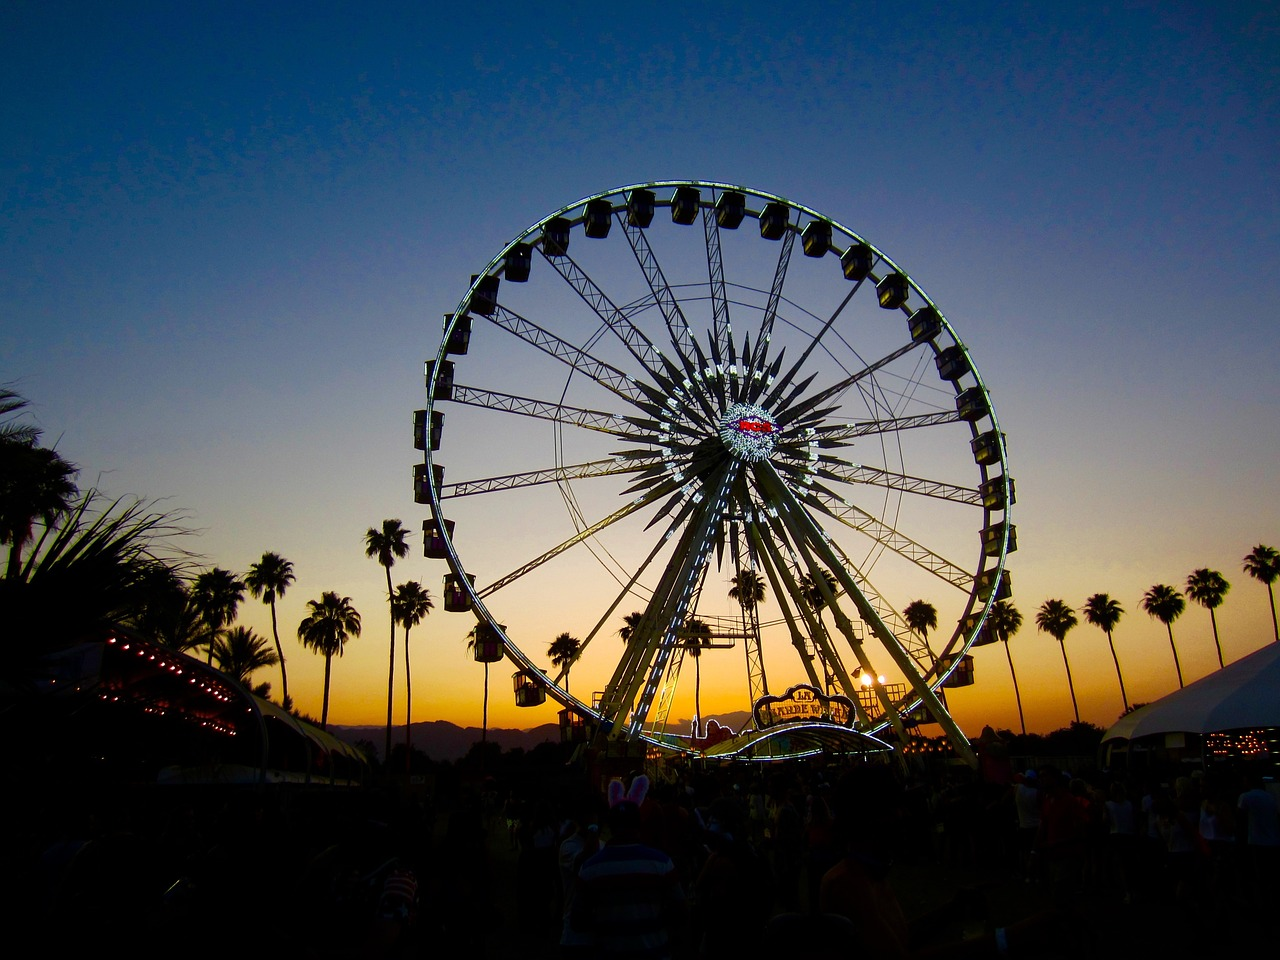 ADIEU, COACHELLA: SEE YOU IN THE FALL?